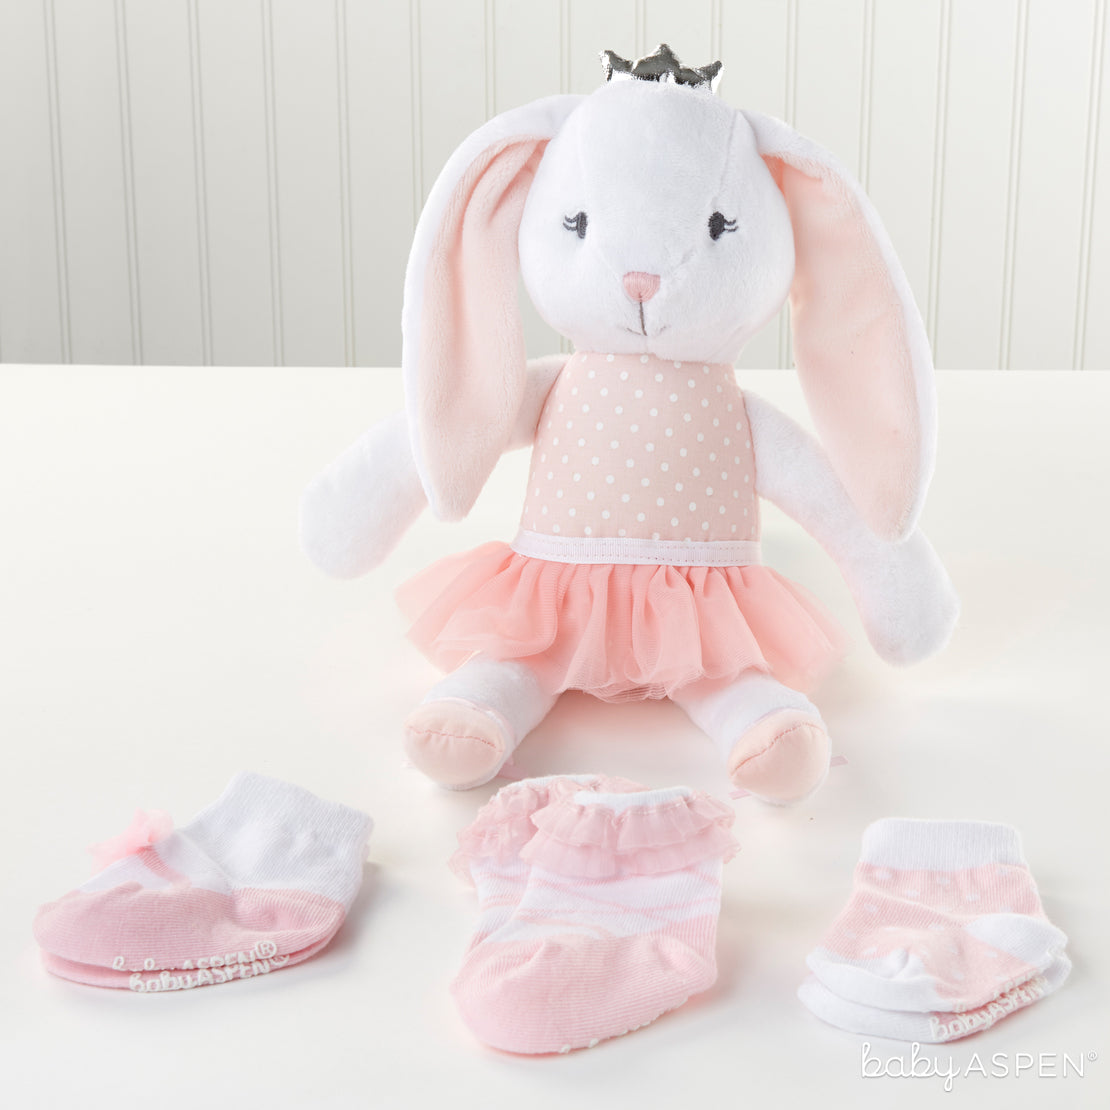 Brandy The Bunny | Plush Friends Every Baby Will Love | Baby Aspen